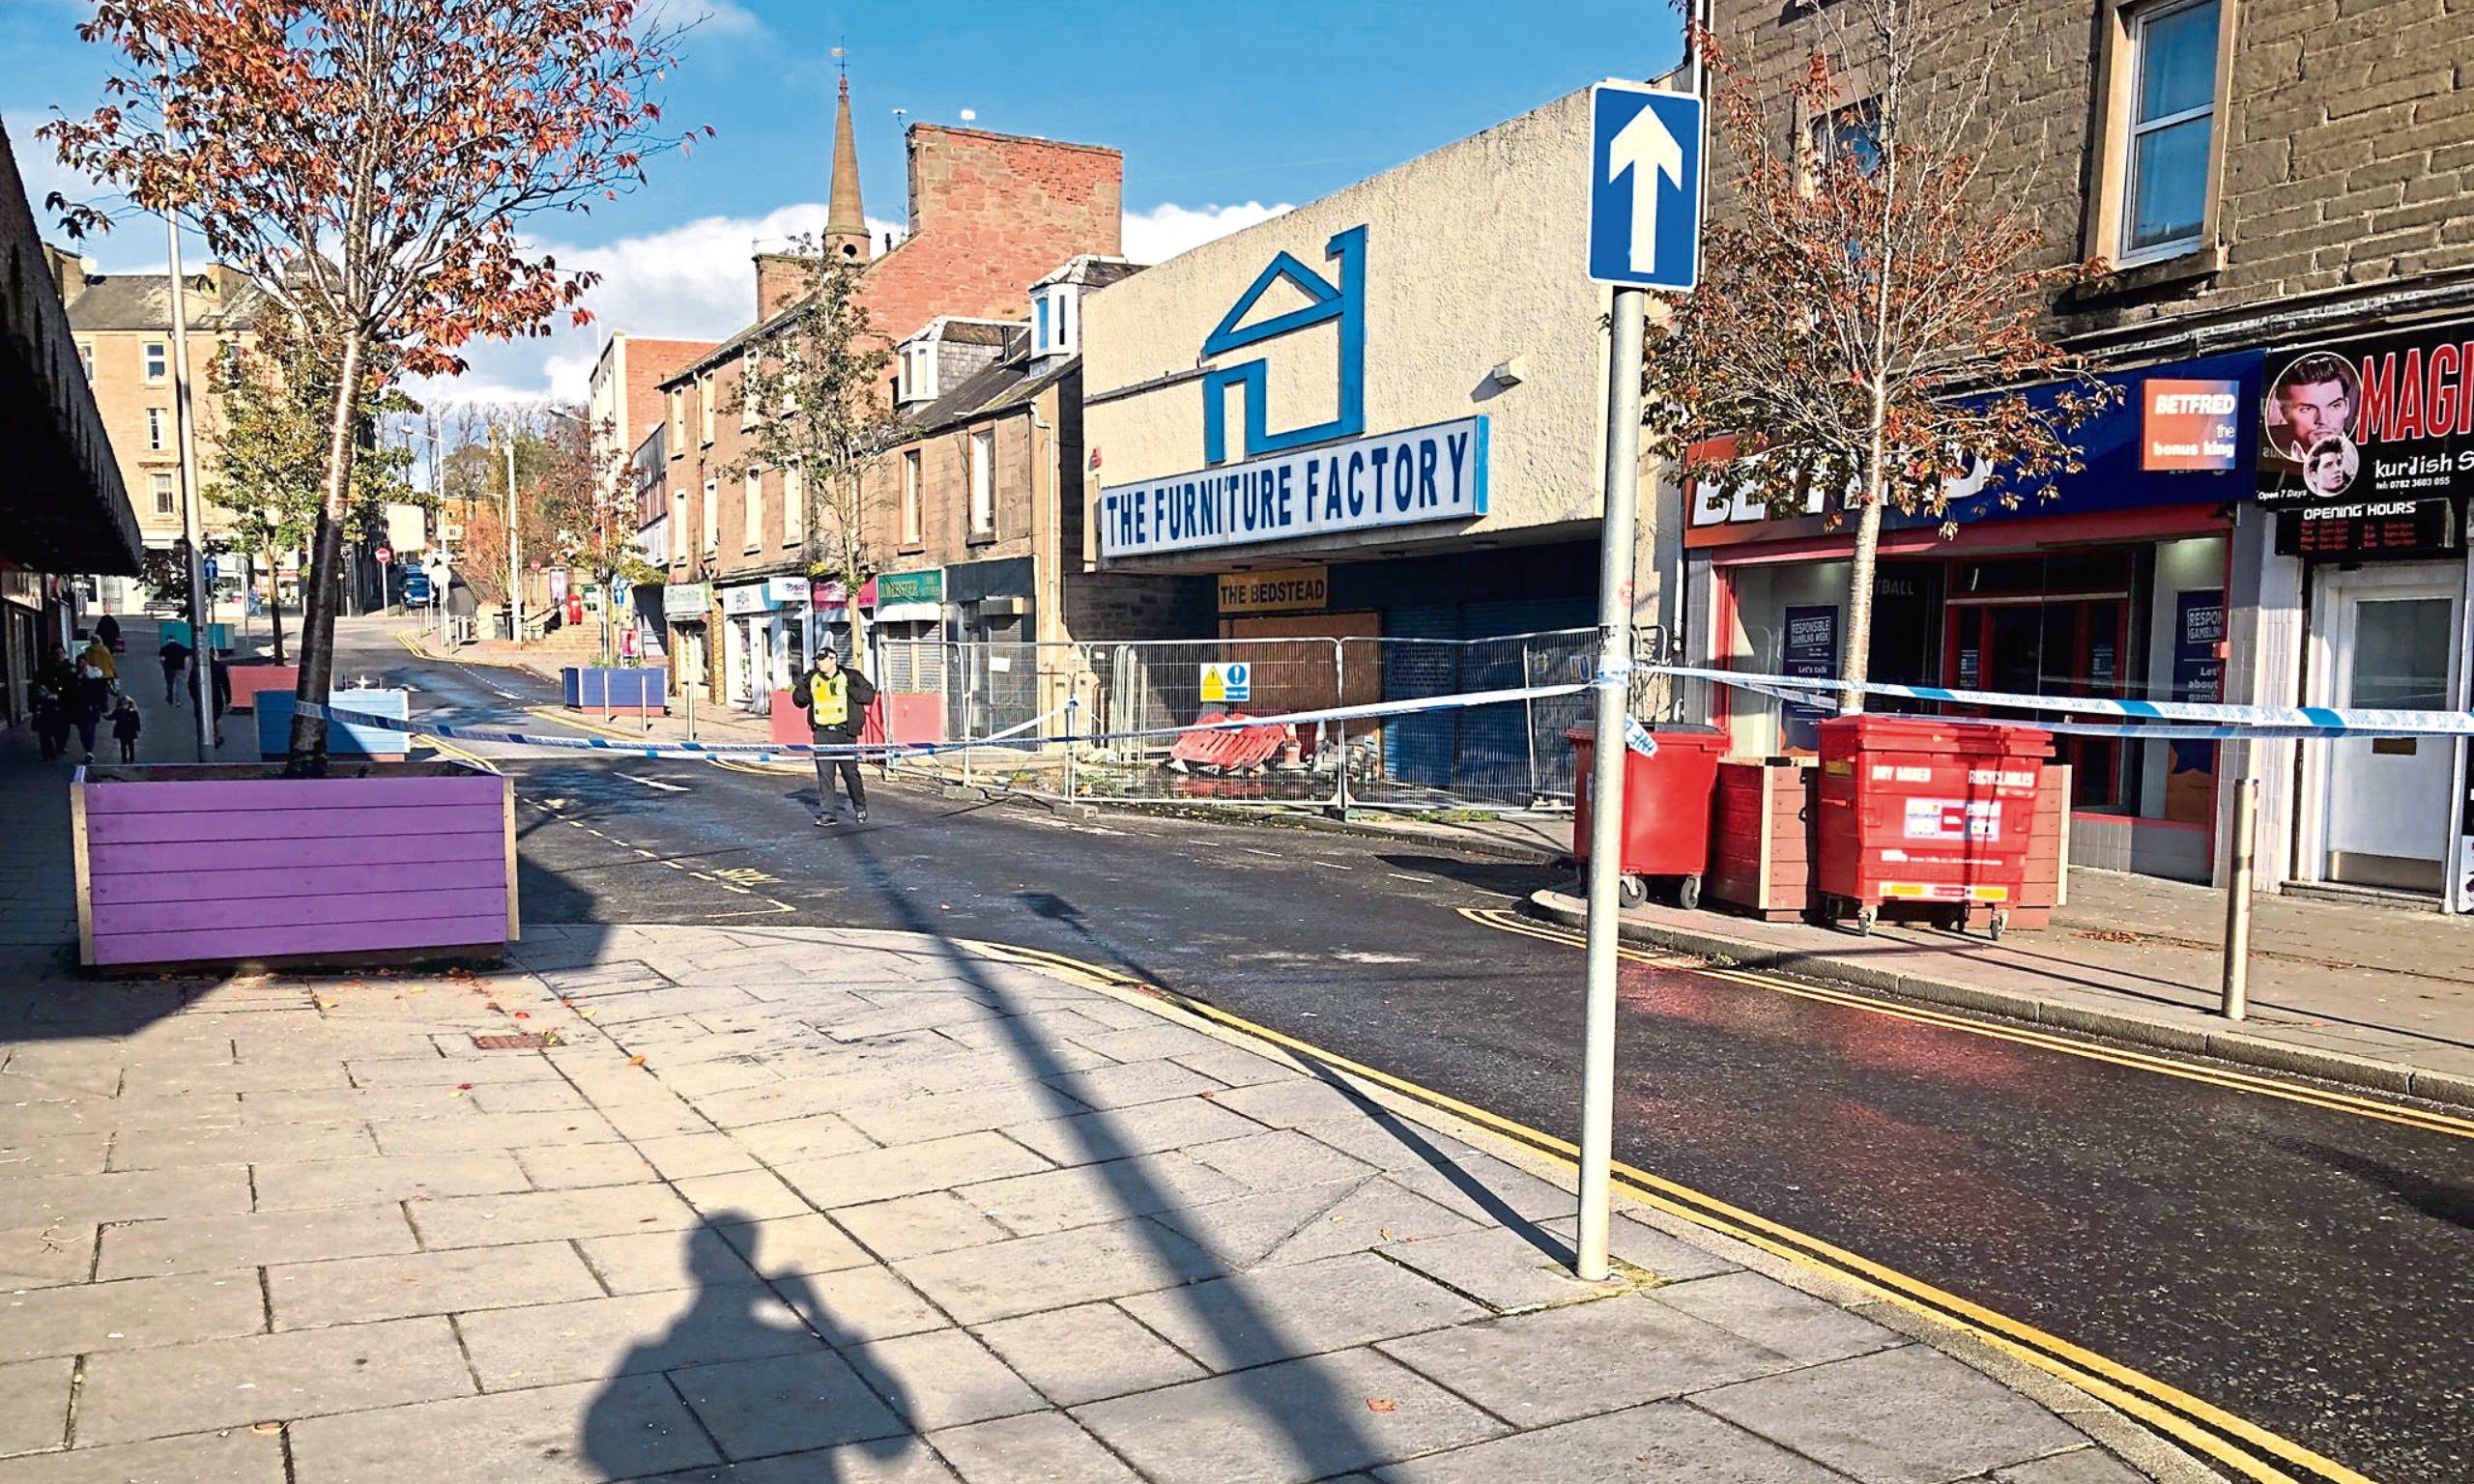 The scene of the incident on Saturday morning.